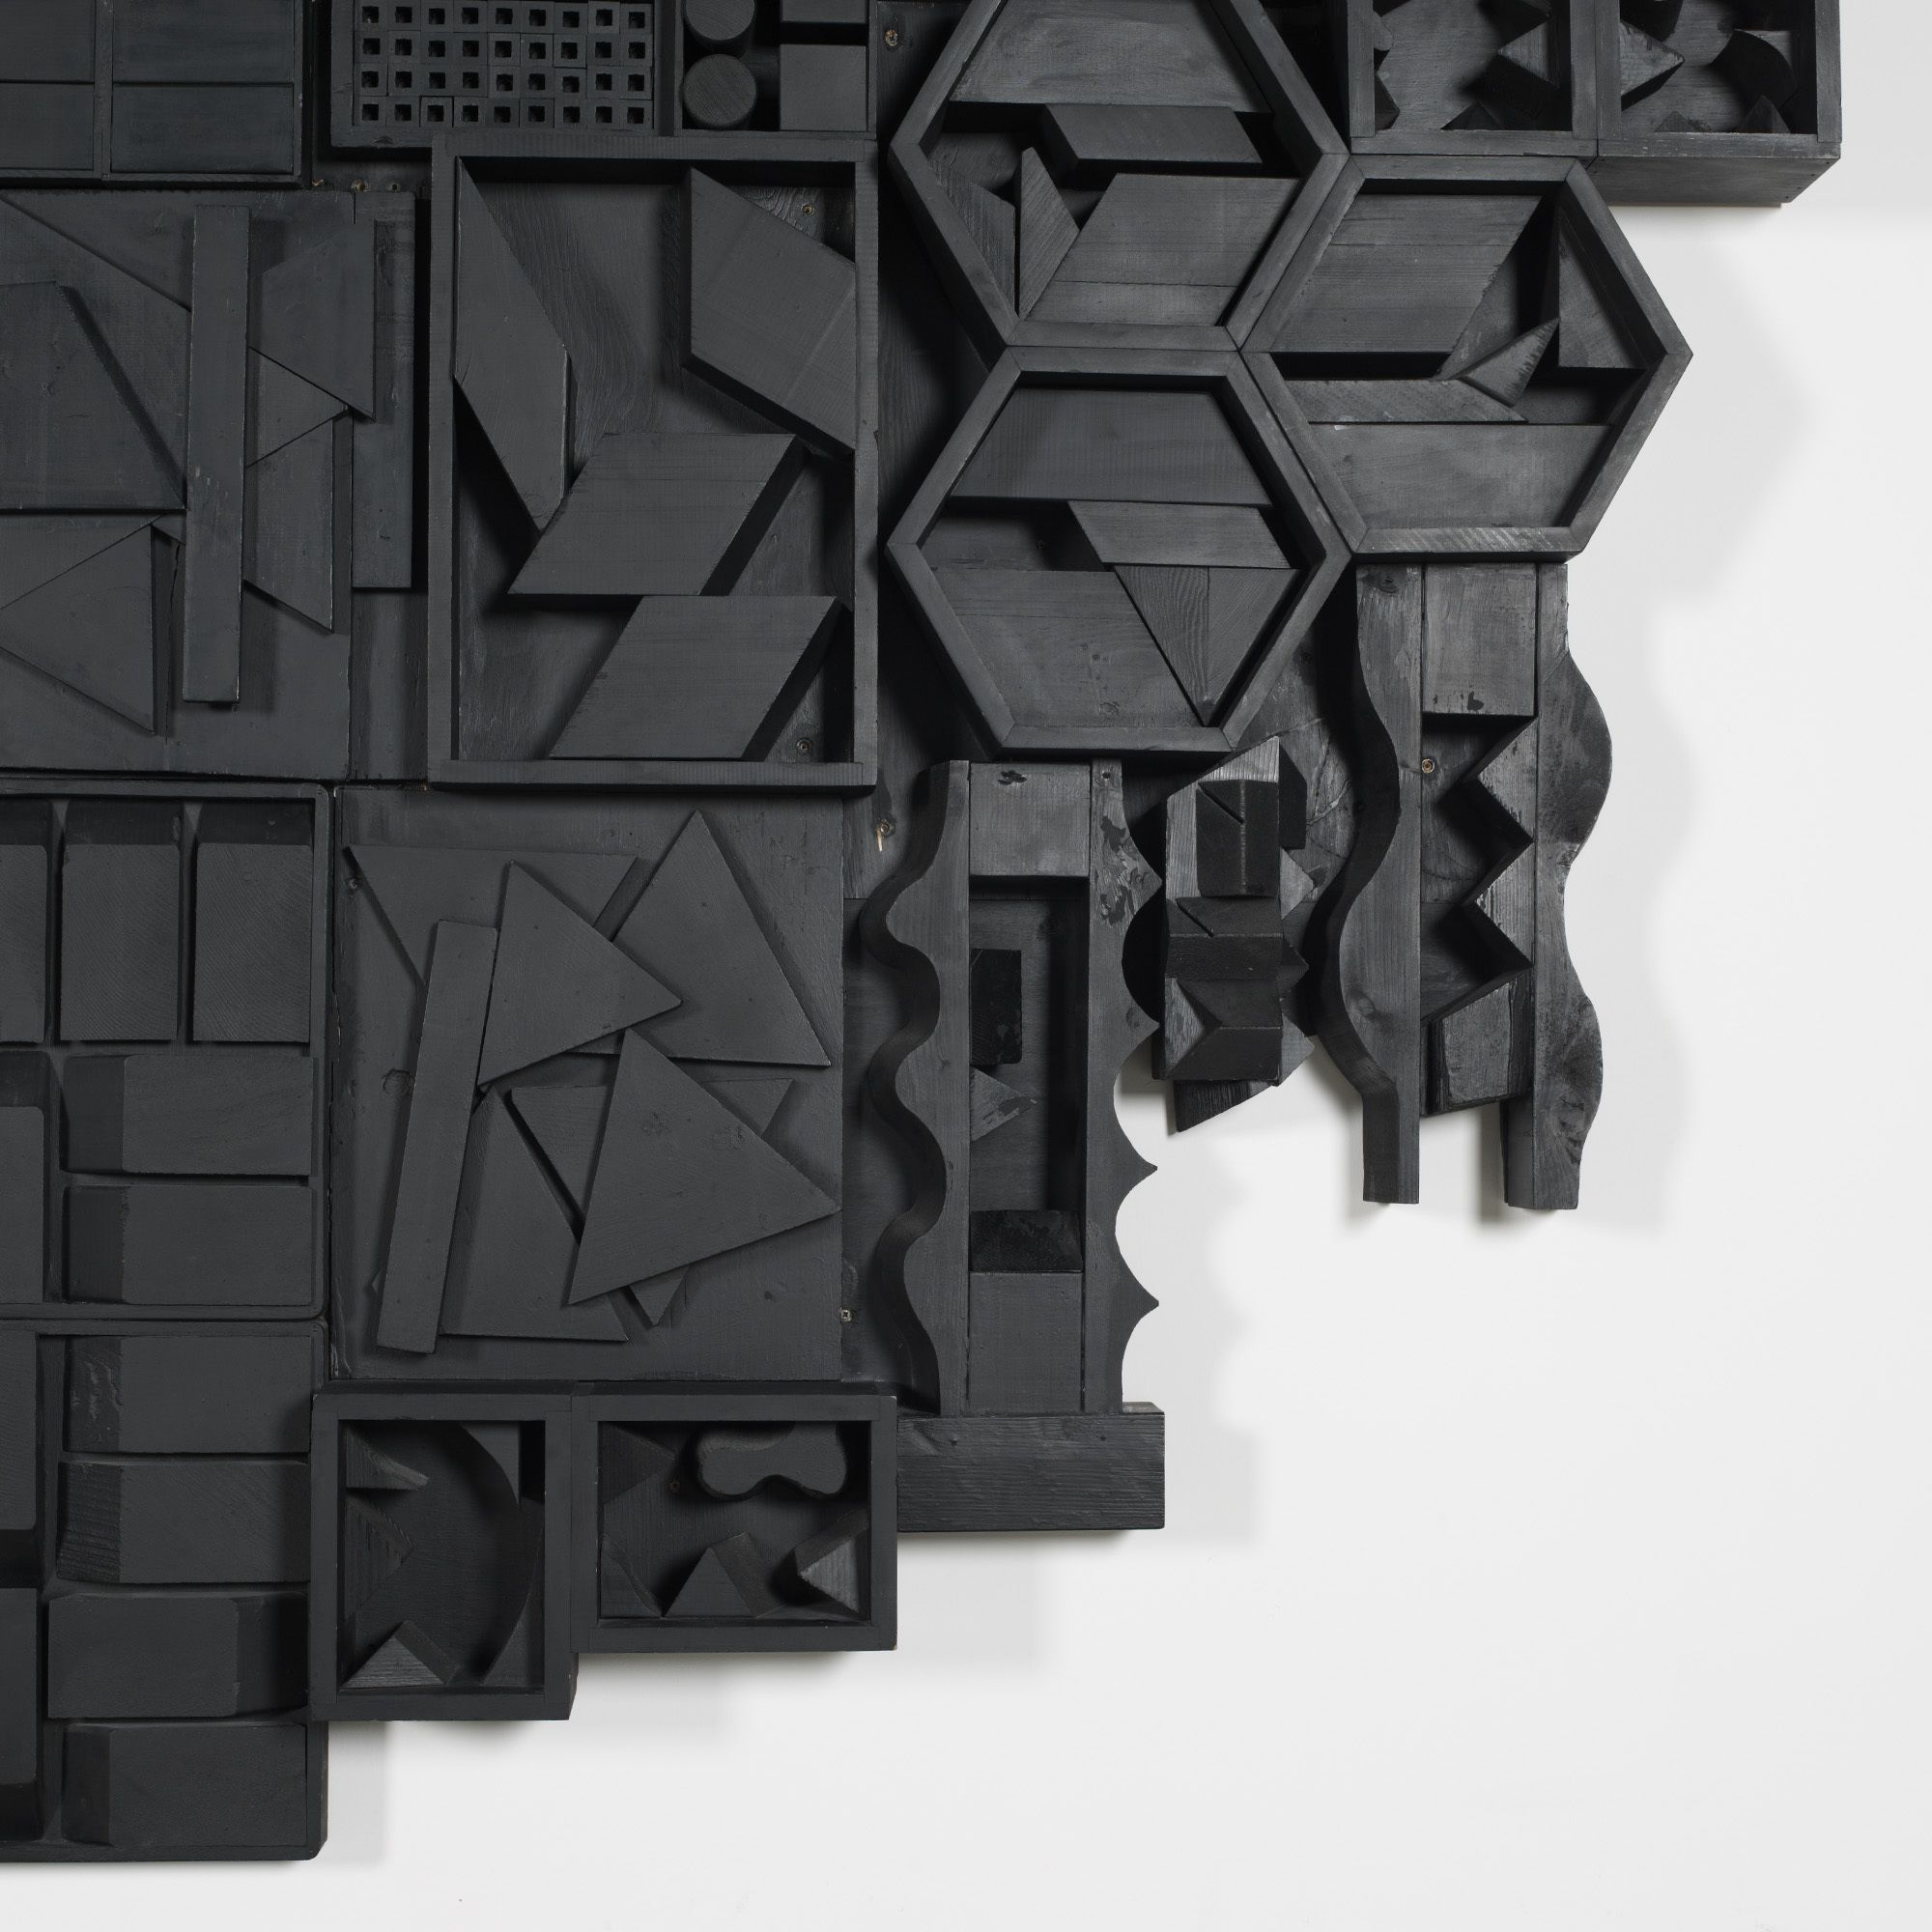 Lot 139: Louise Nevelson 1899–1988. untitled. 1972, lacquered wood construction. 138 h x 139 w x 8 d in. result: $266,500. estimate: $300,000–500,000. Provenance: Private commission for Jay Spectre | Private collection, Colorado | Private collection, New York